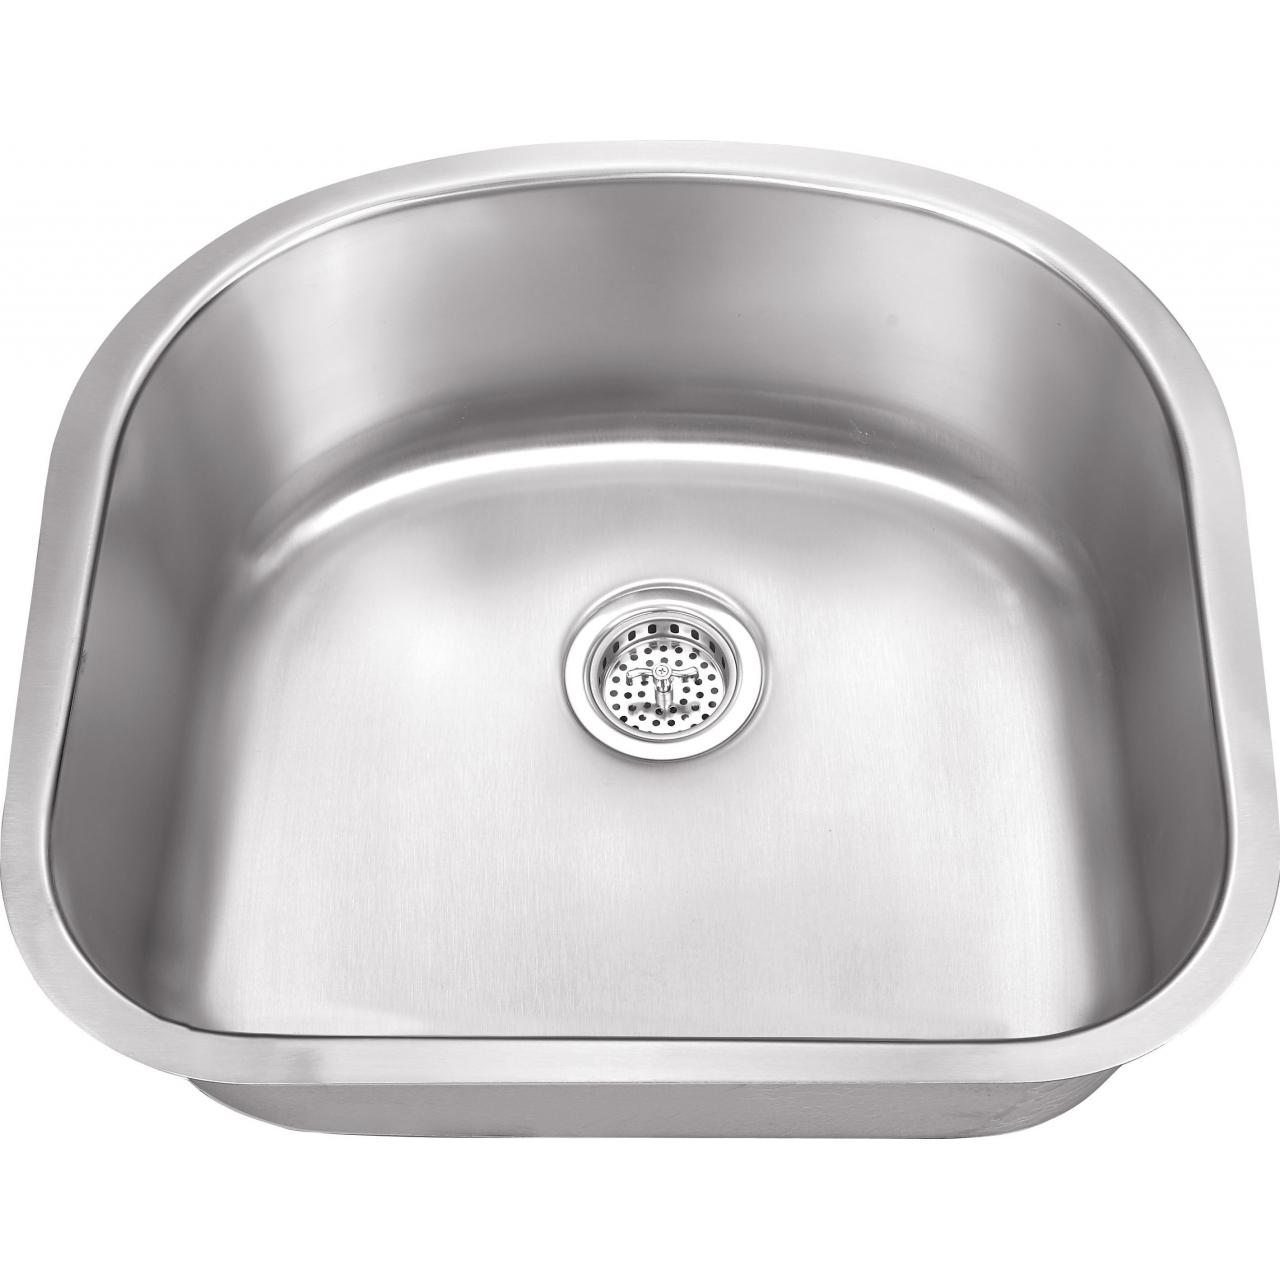 18 Gauge Premium Stainless Sinks